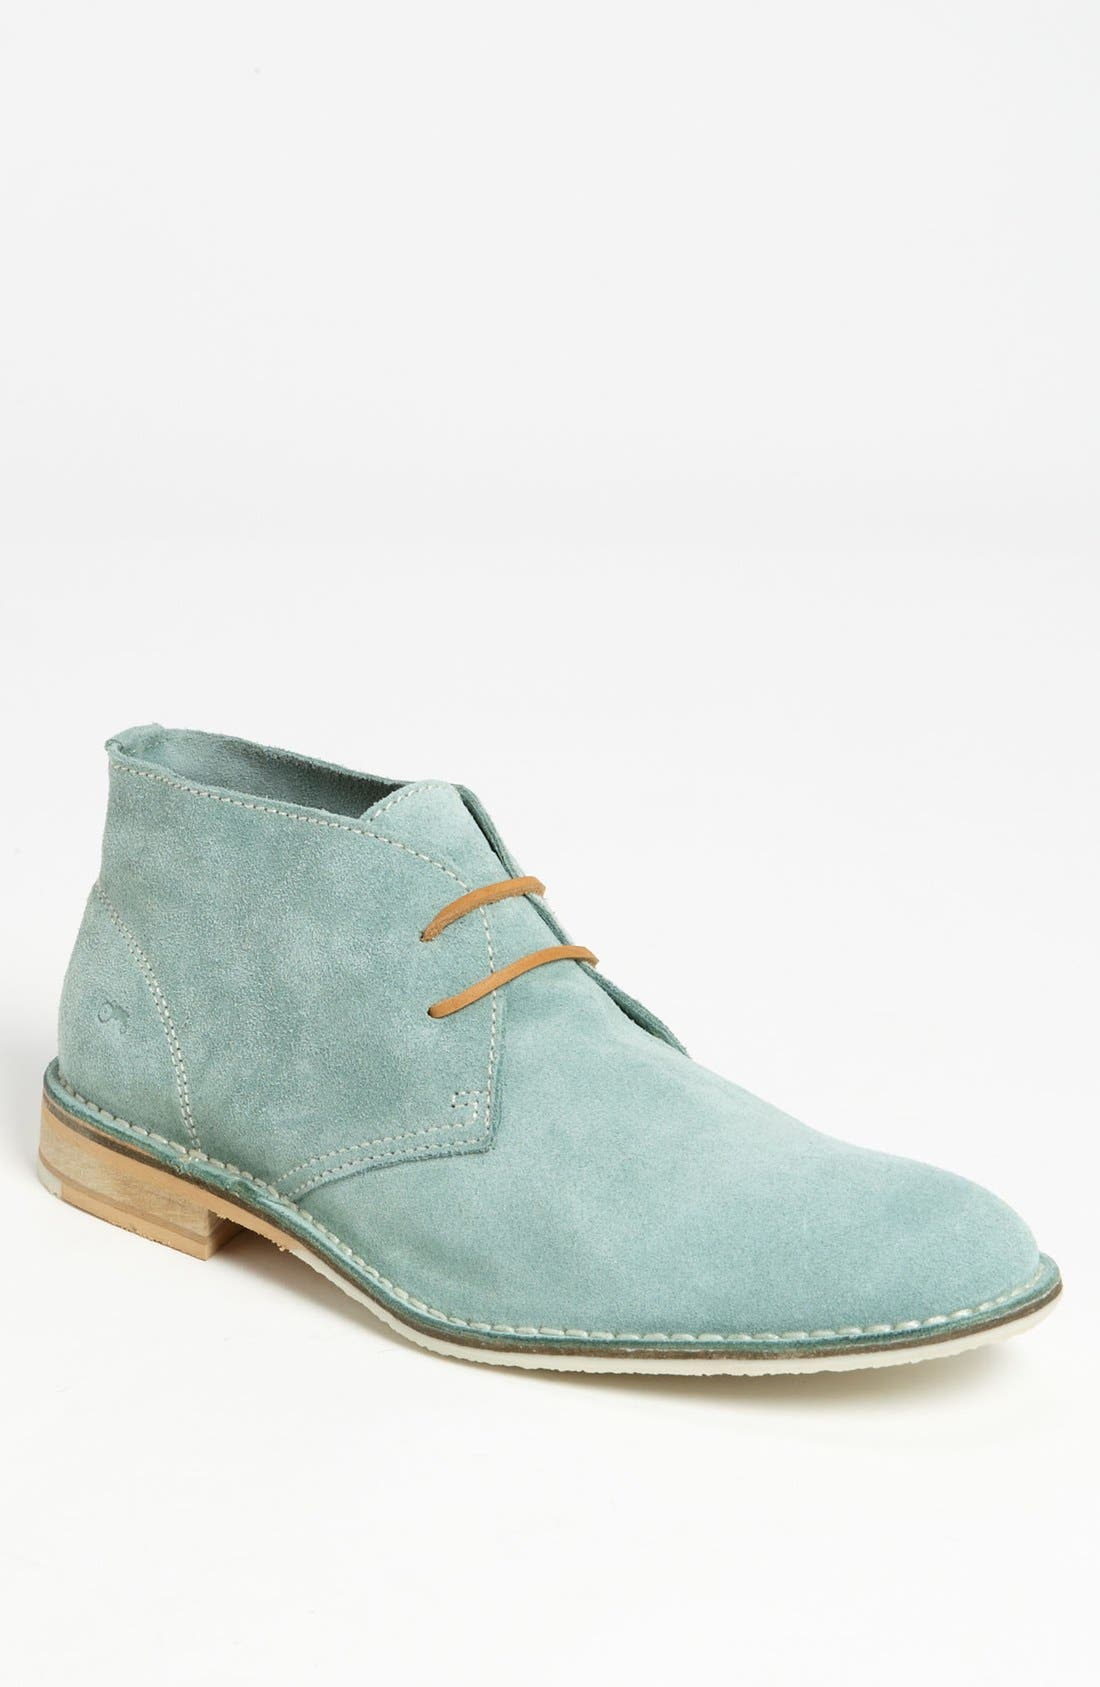 Alternate Image 1 Selected - Moods of Norway 'Majorstuen' Chukka Boot